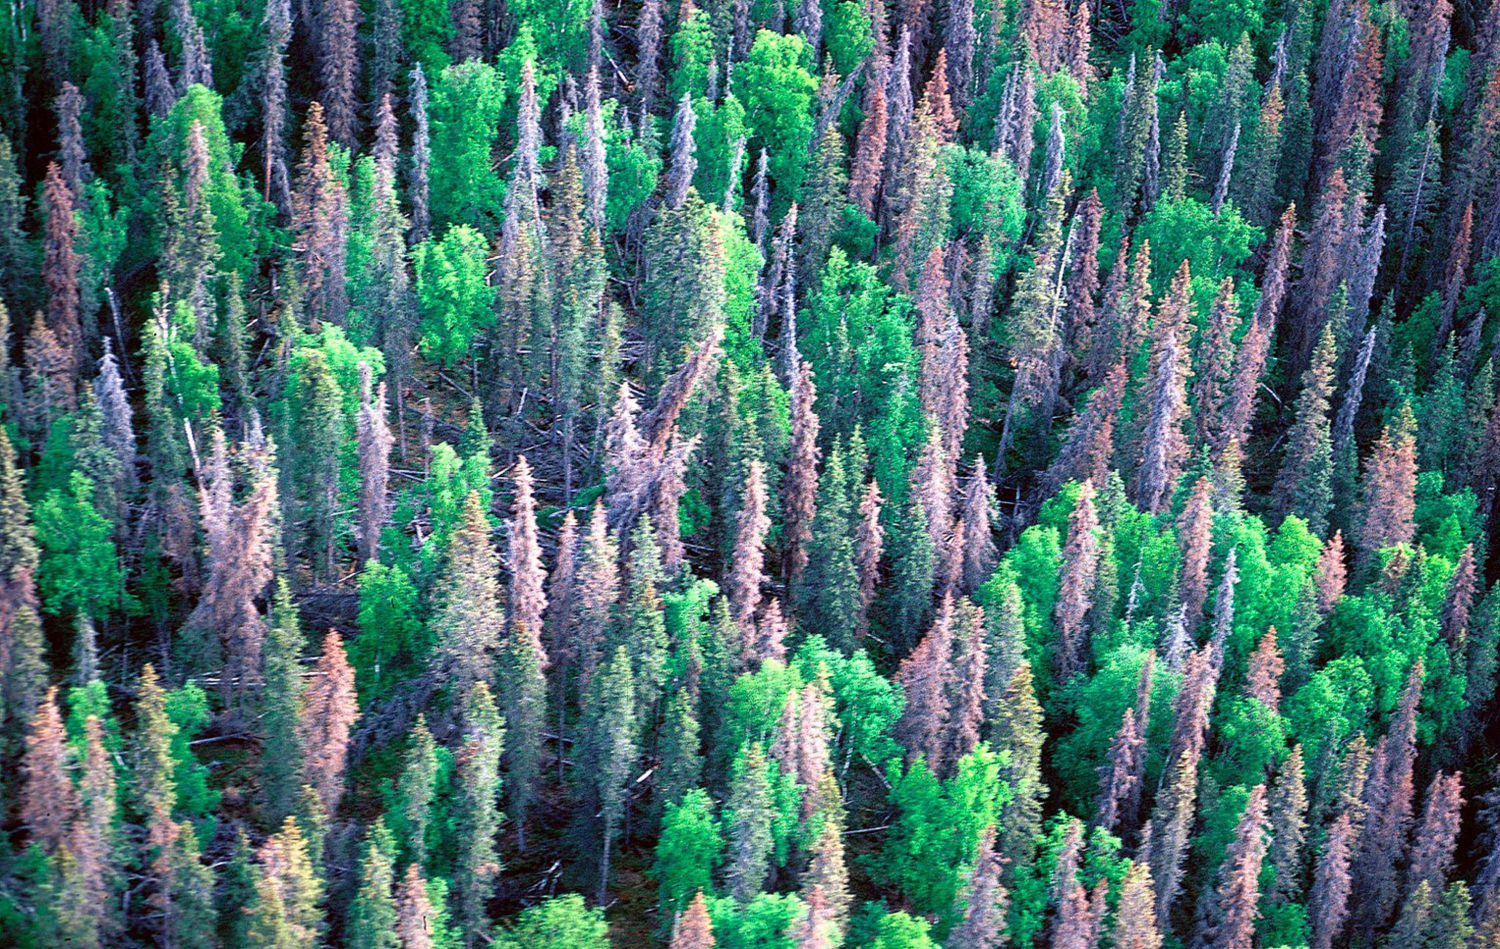 After Massive Beetle Outbreaks, Some Western Forests Show Signs of Recovery